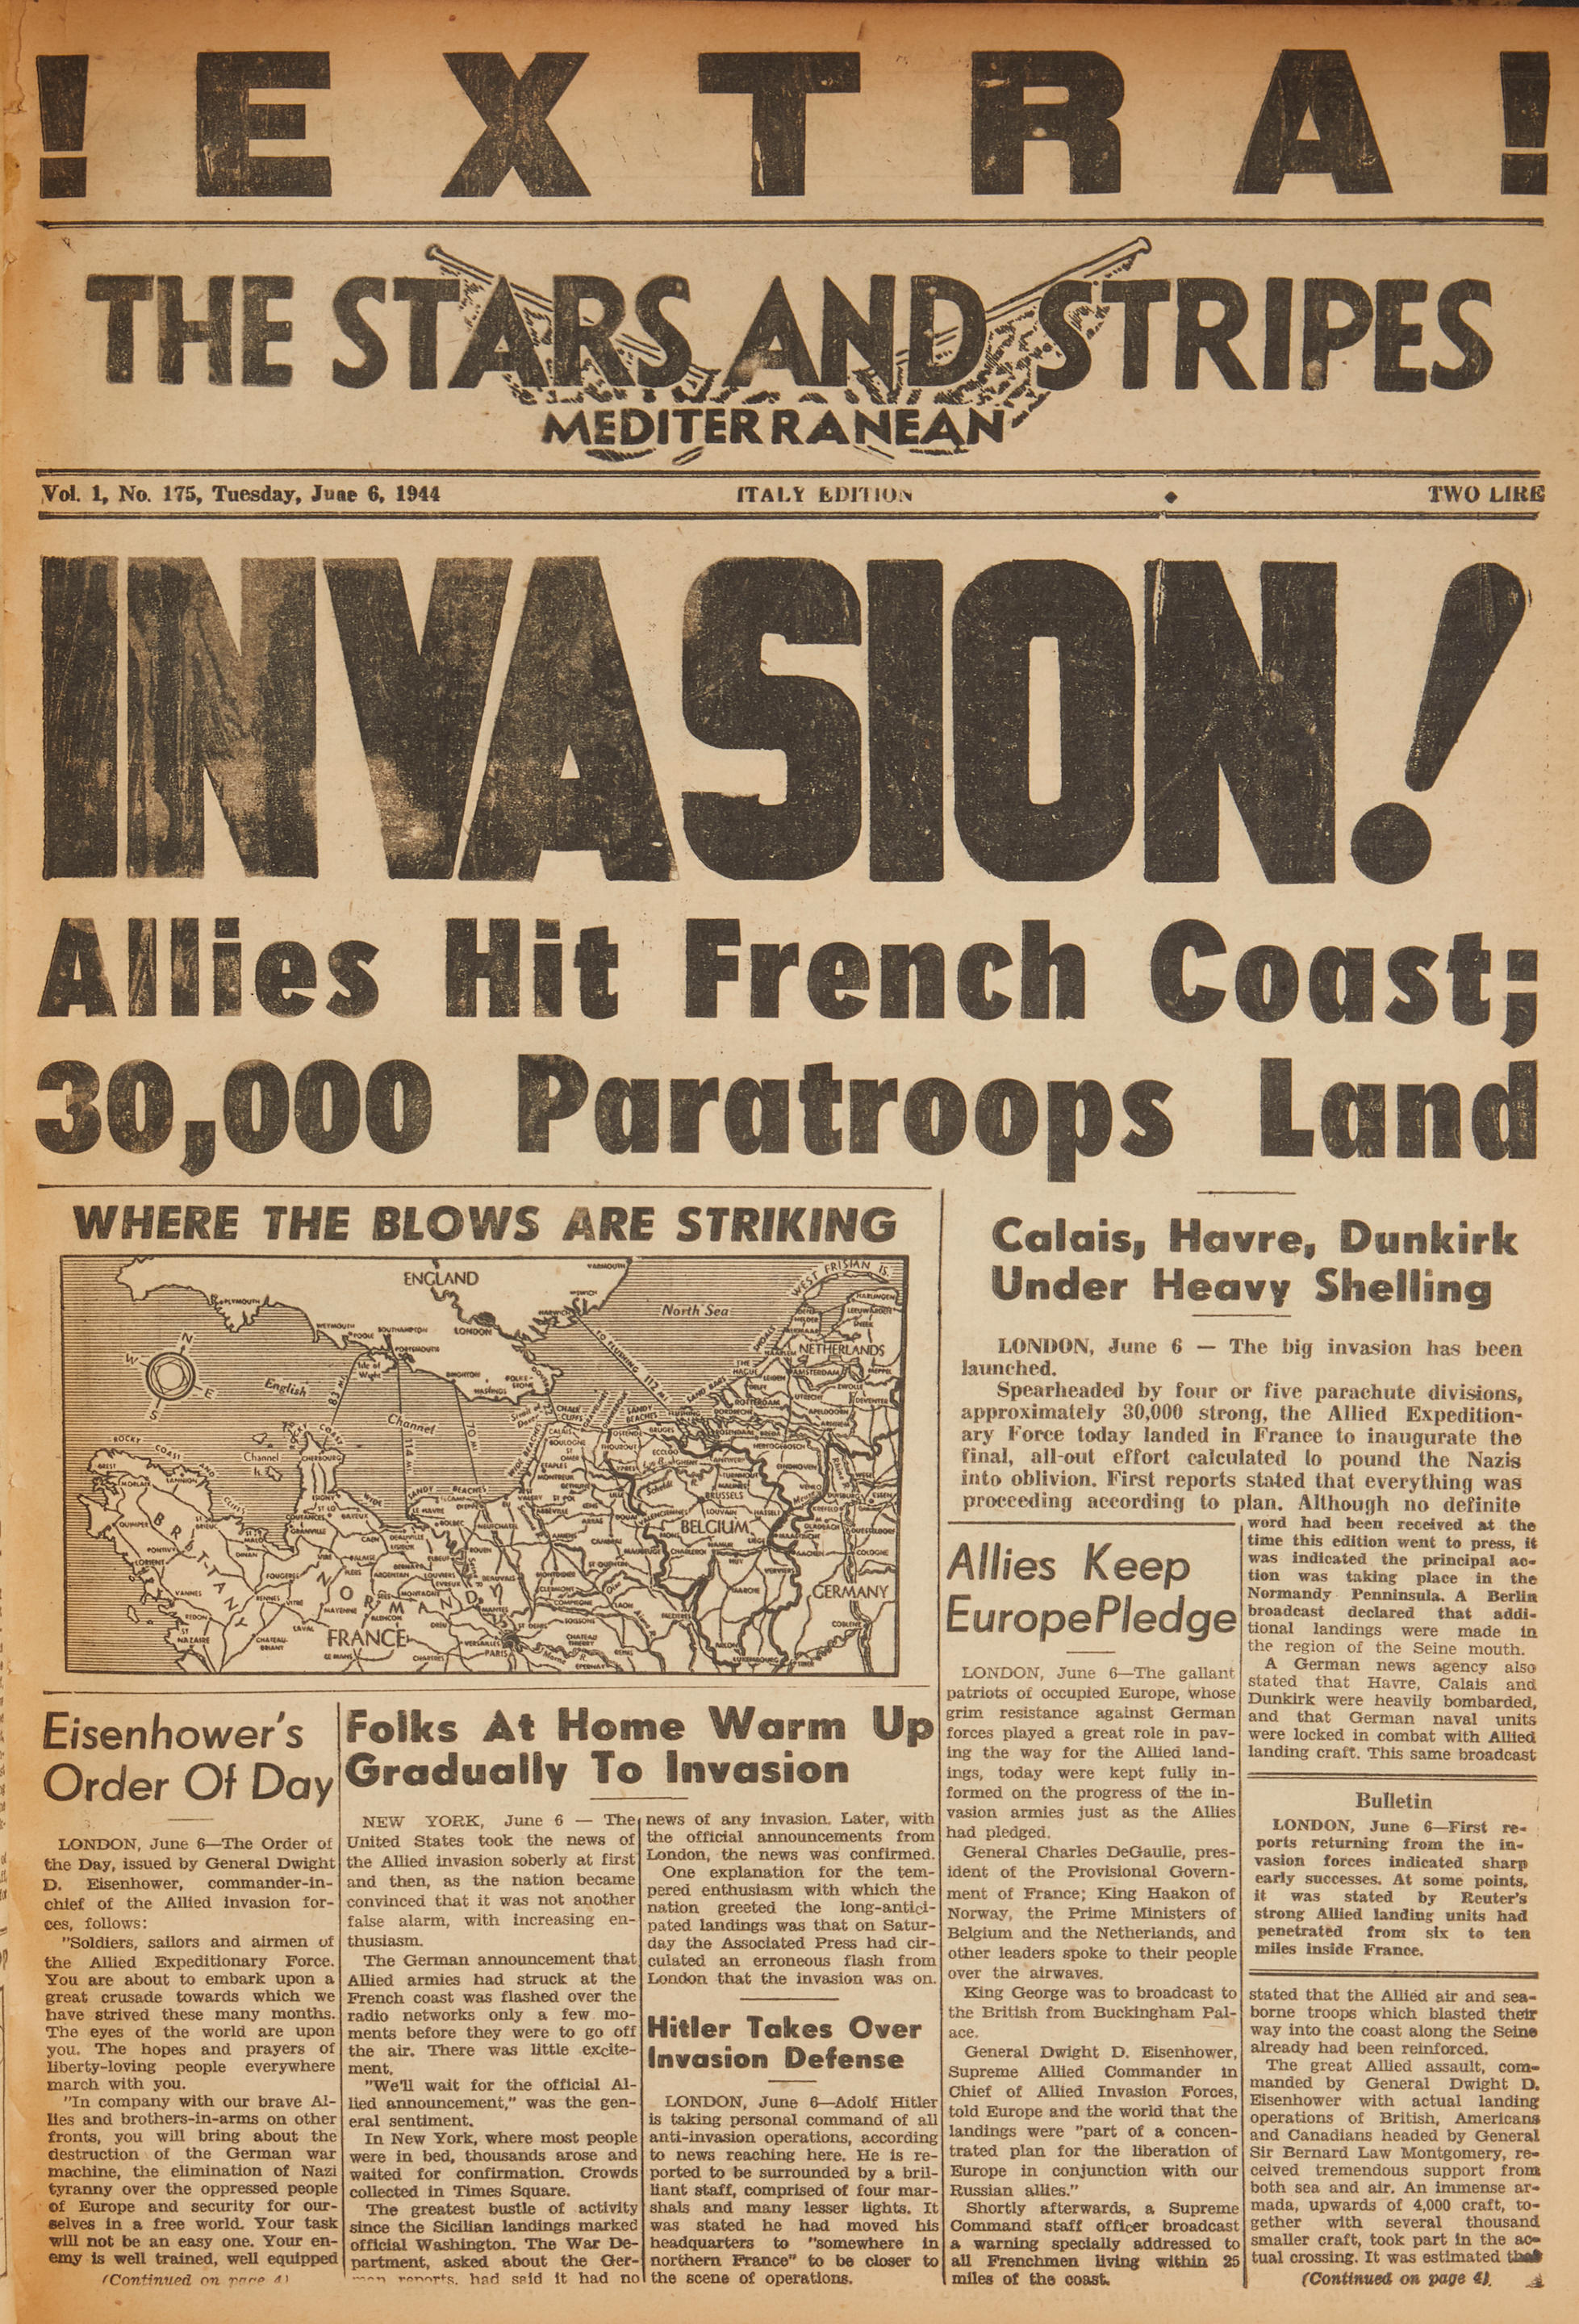 STARS AND STRIPES NEWSPAPER, MEDITERRANEAN ISSUE.